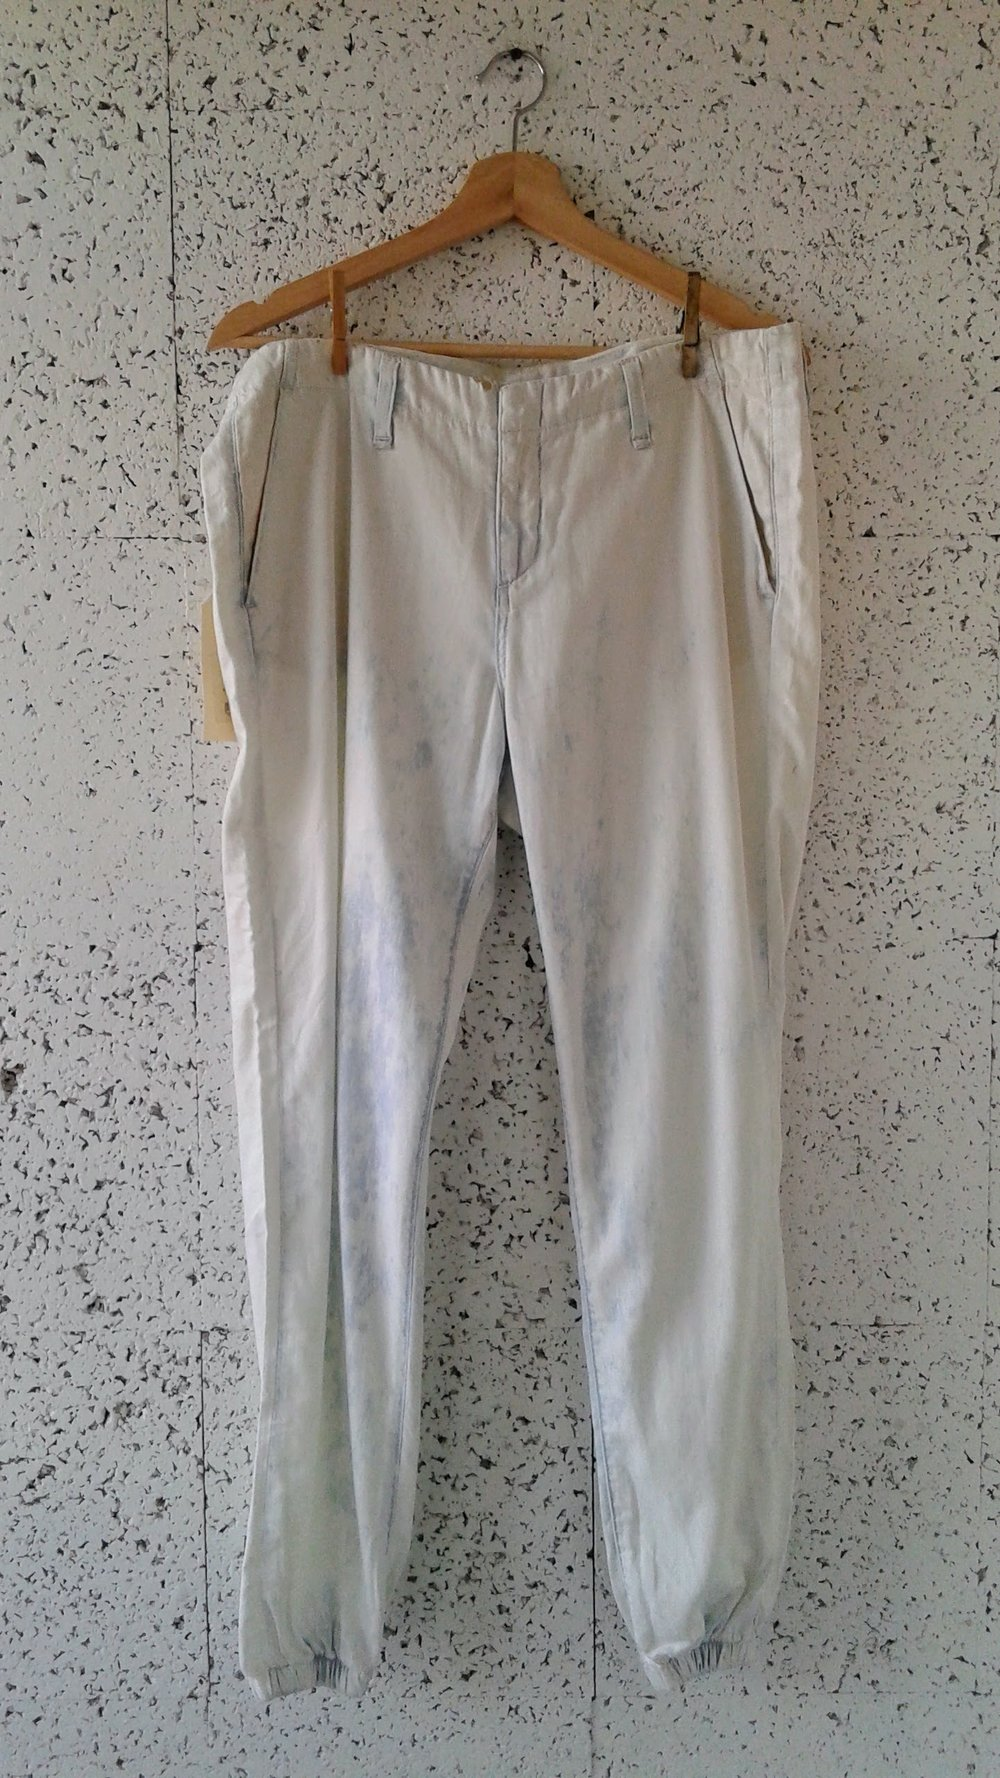 Rag and Bone pants (NWT); Size 29, $42